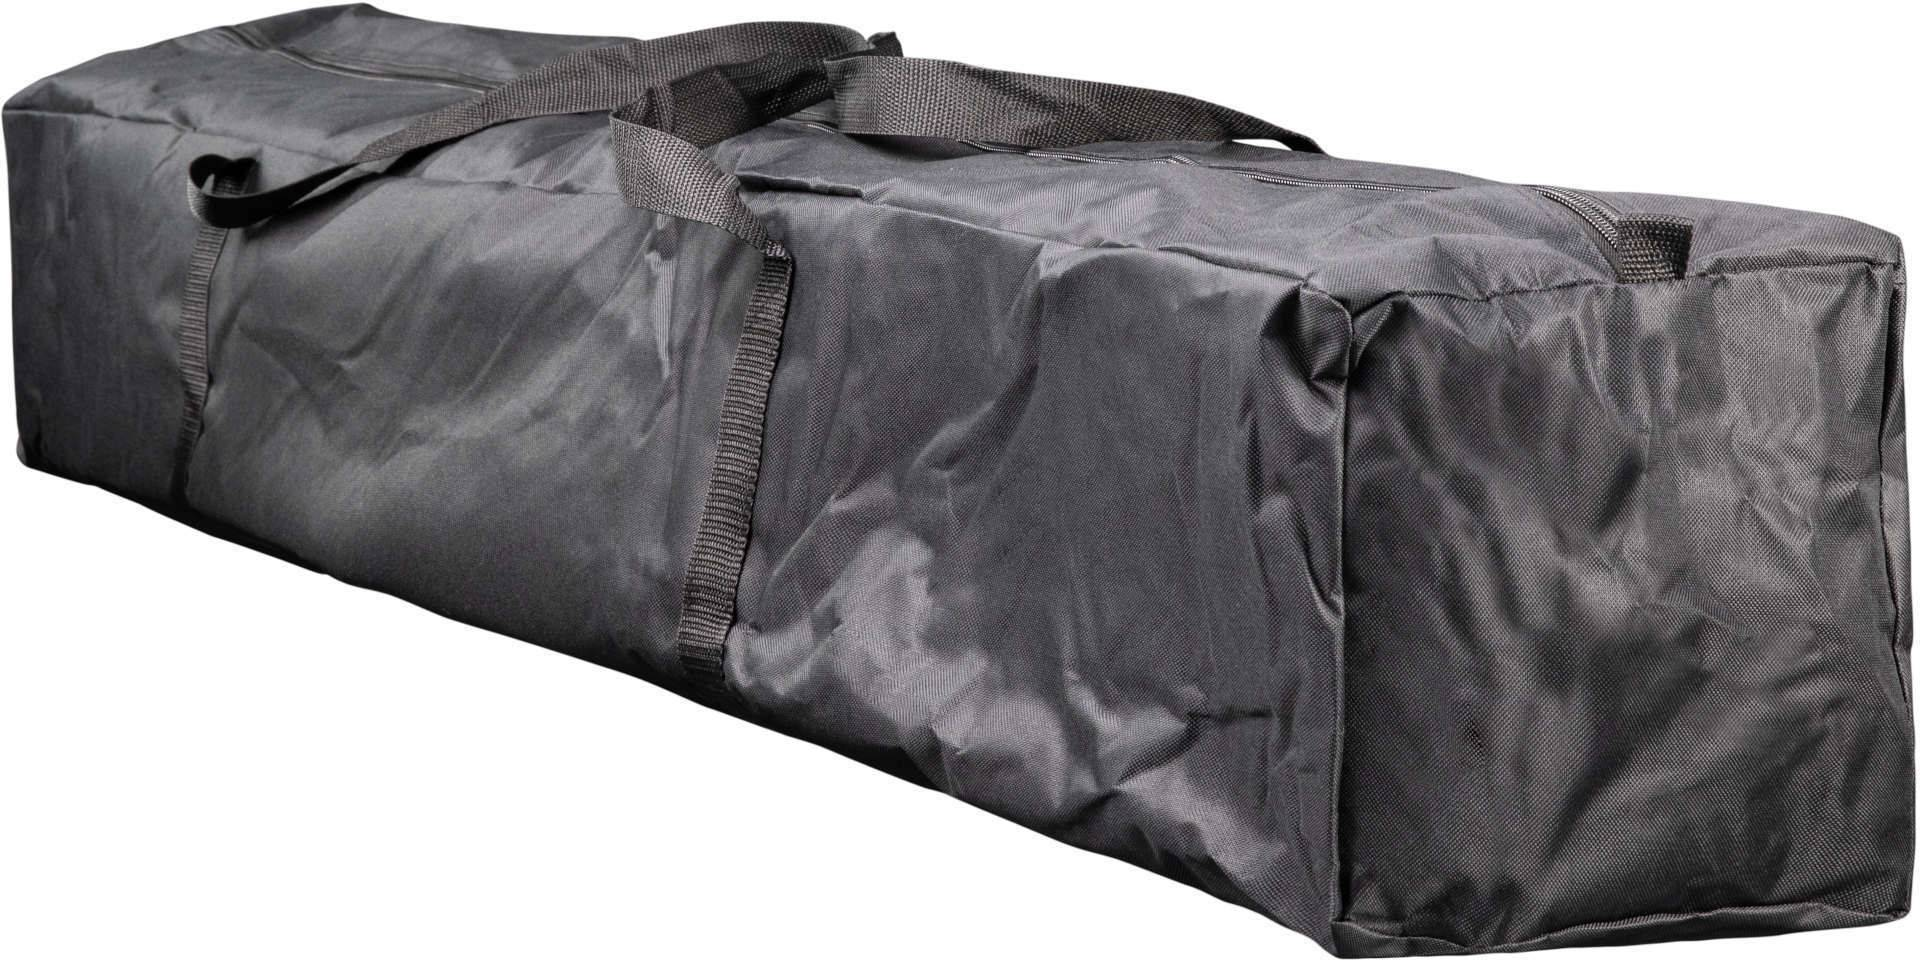 FC-Moto Bag for Tent  - Size: One Size